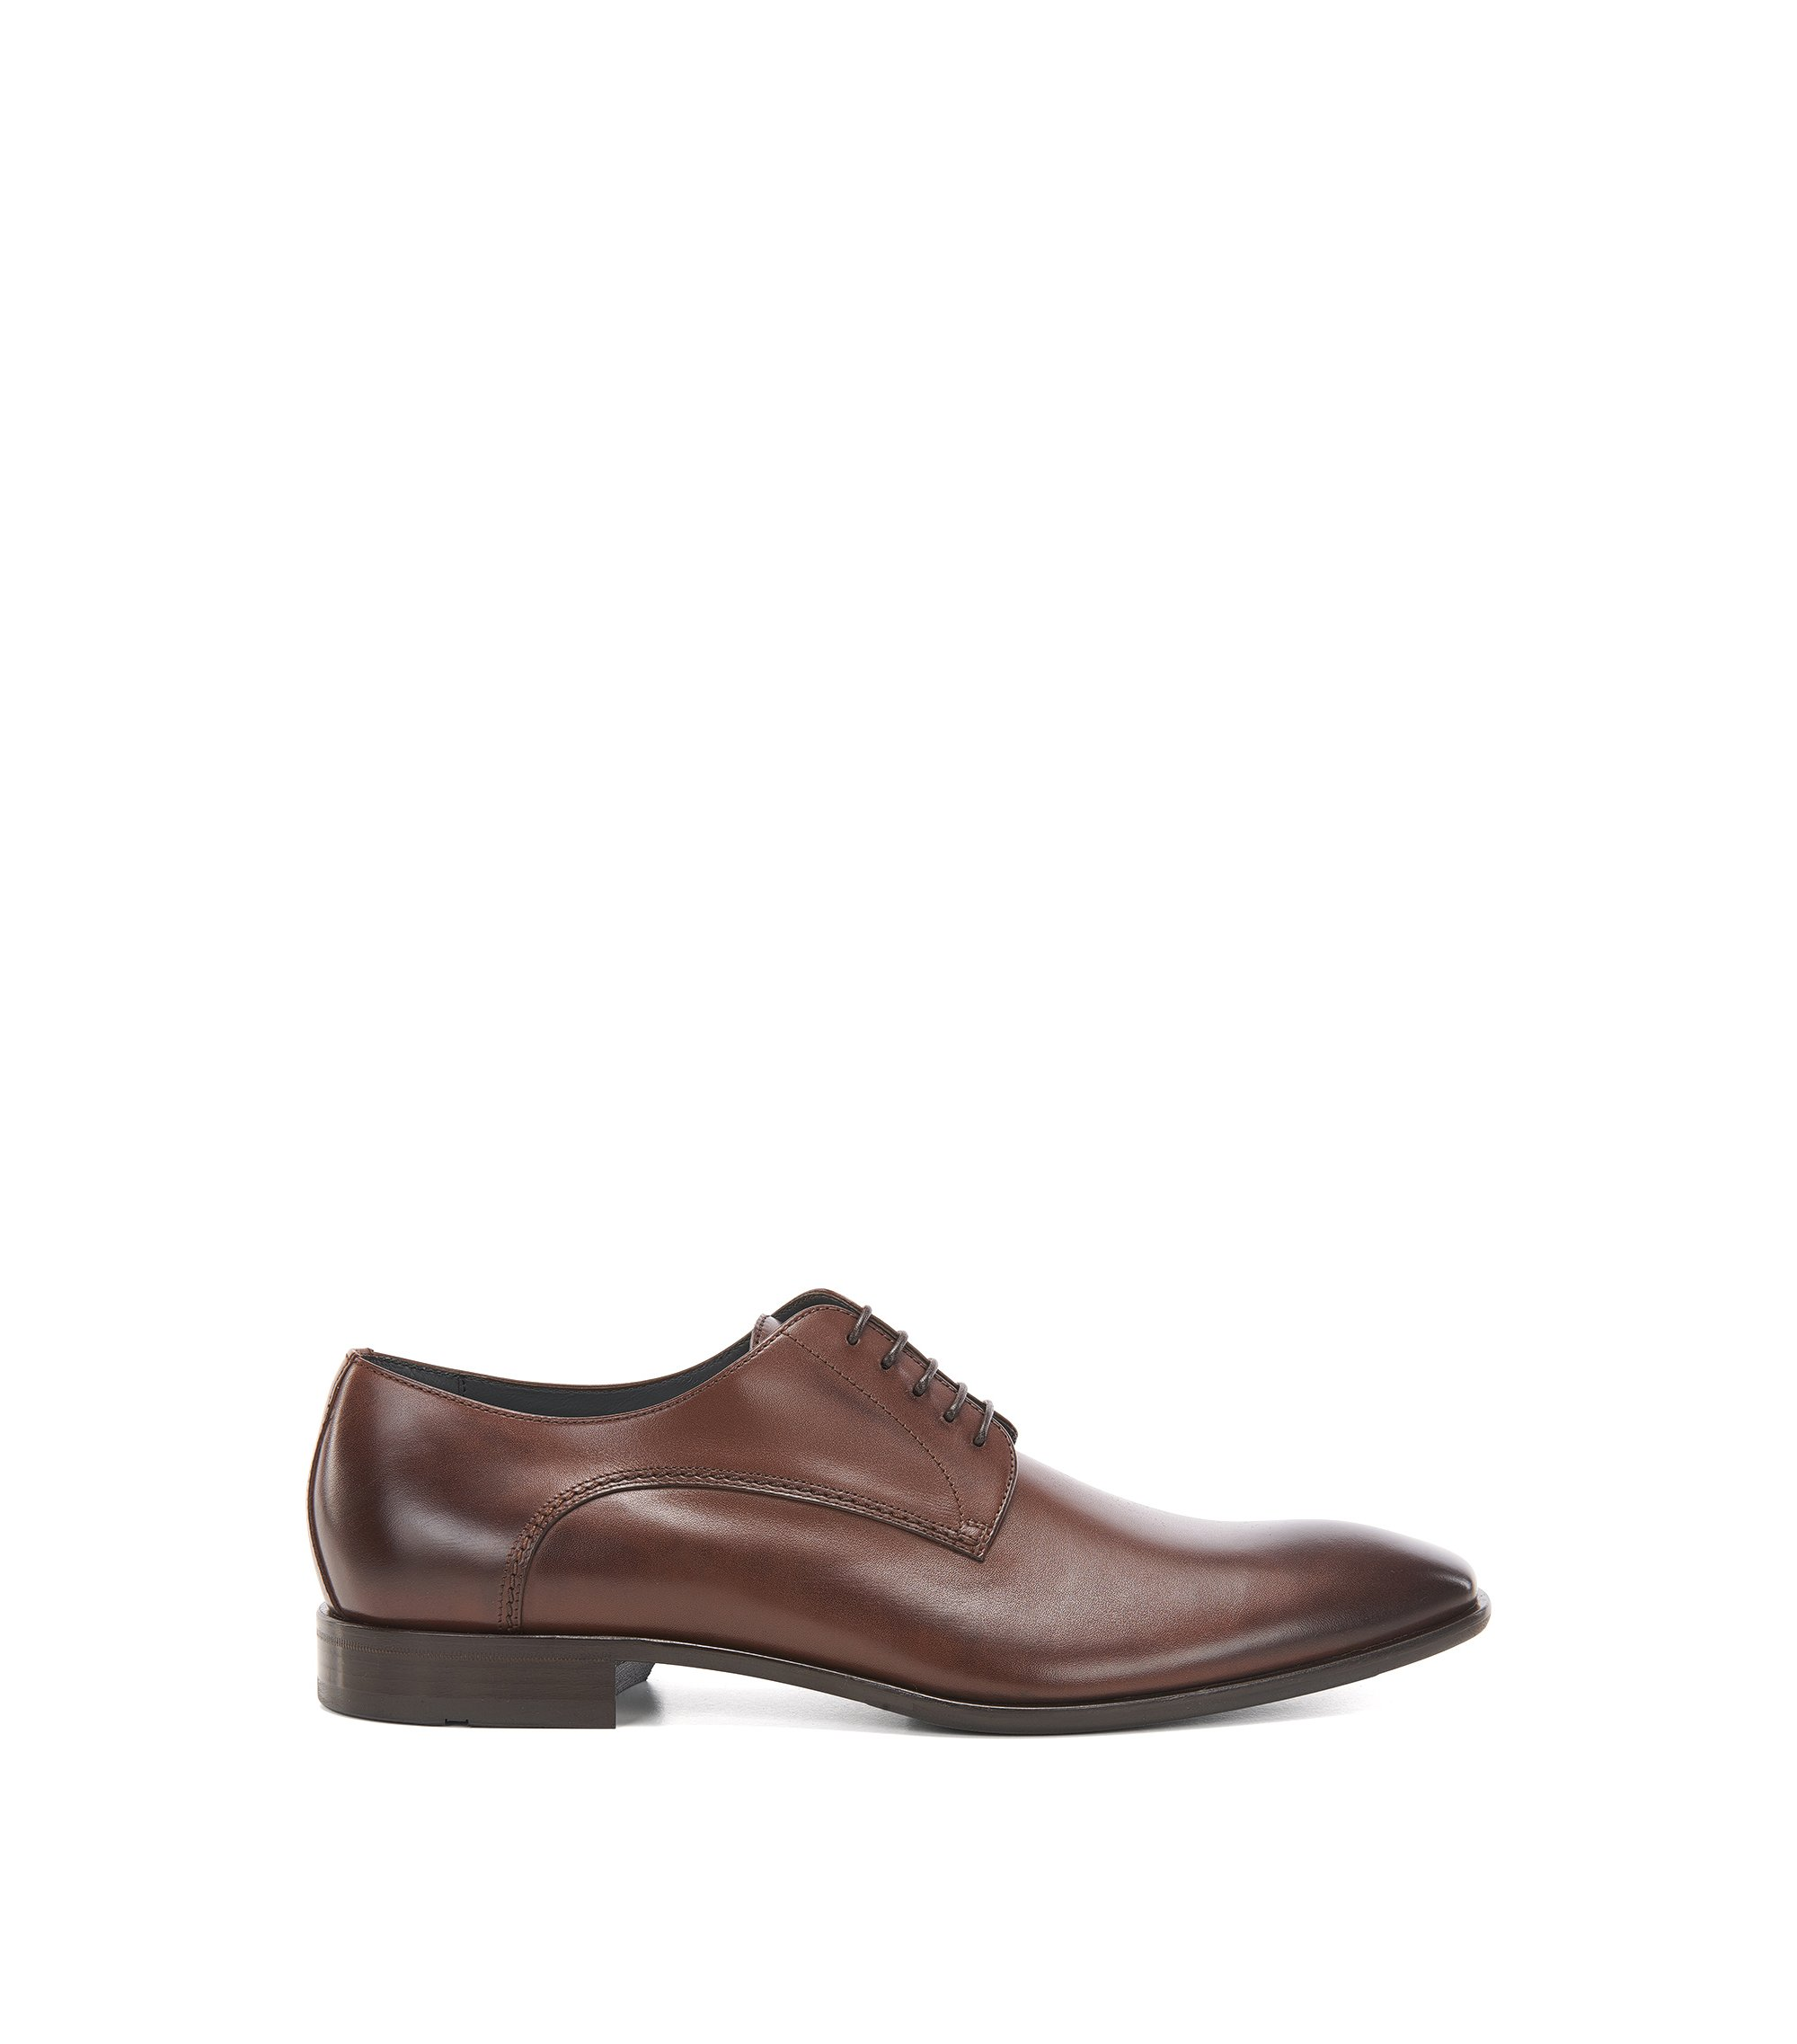 Leather Derby shoes with antique finish, Brown